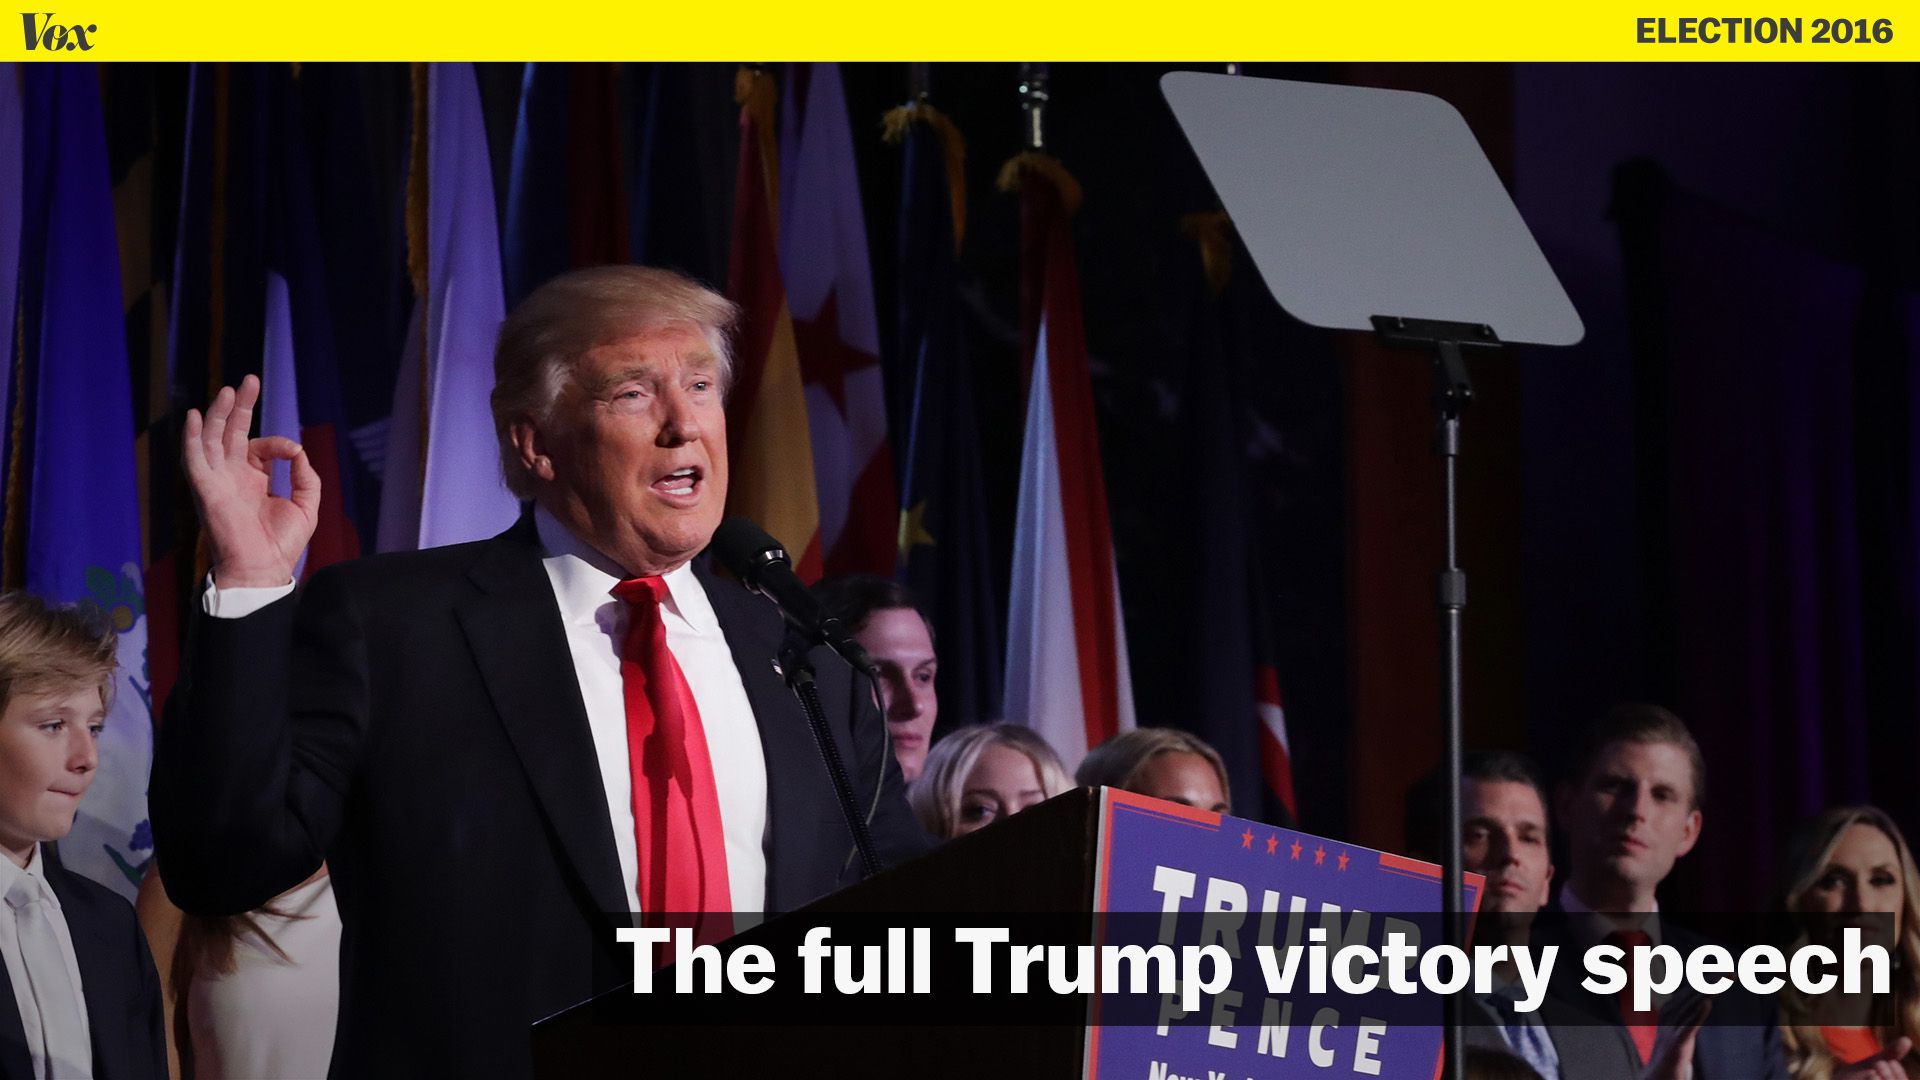 Donald Trump wins 2016 presidential election: victory speech, full transcript